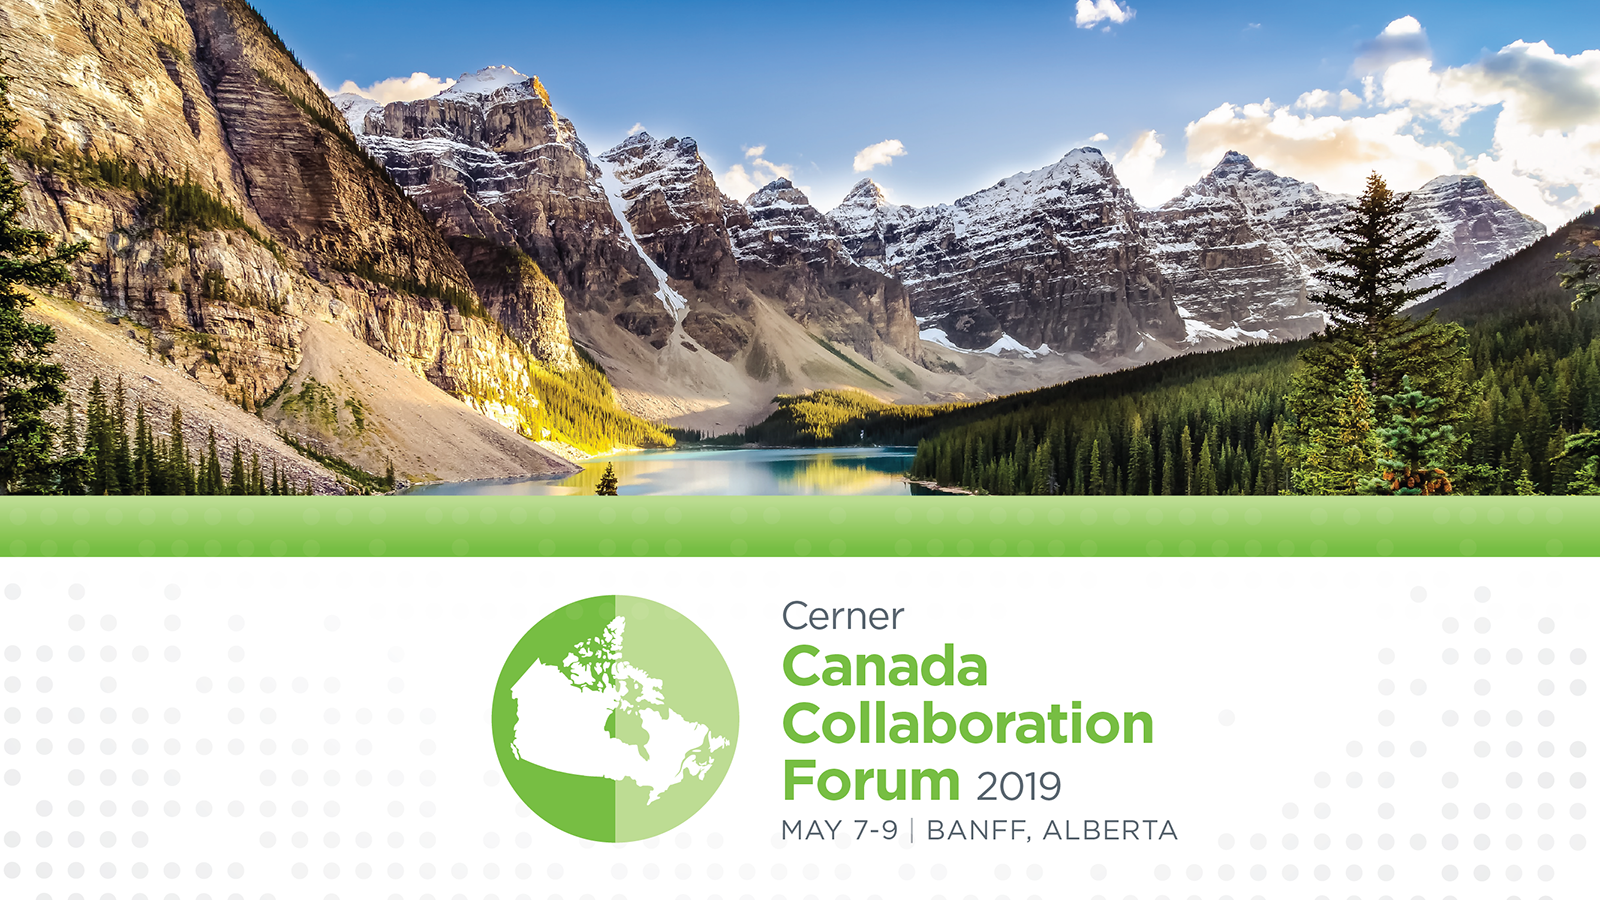 Canada Collaboration Forum 2019